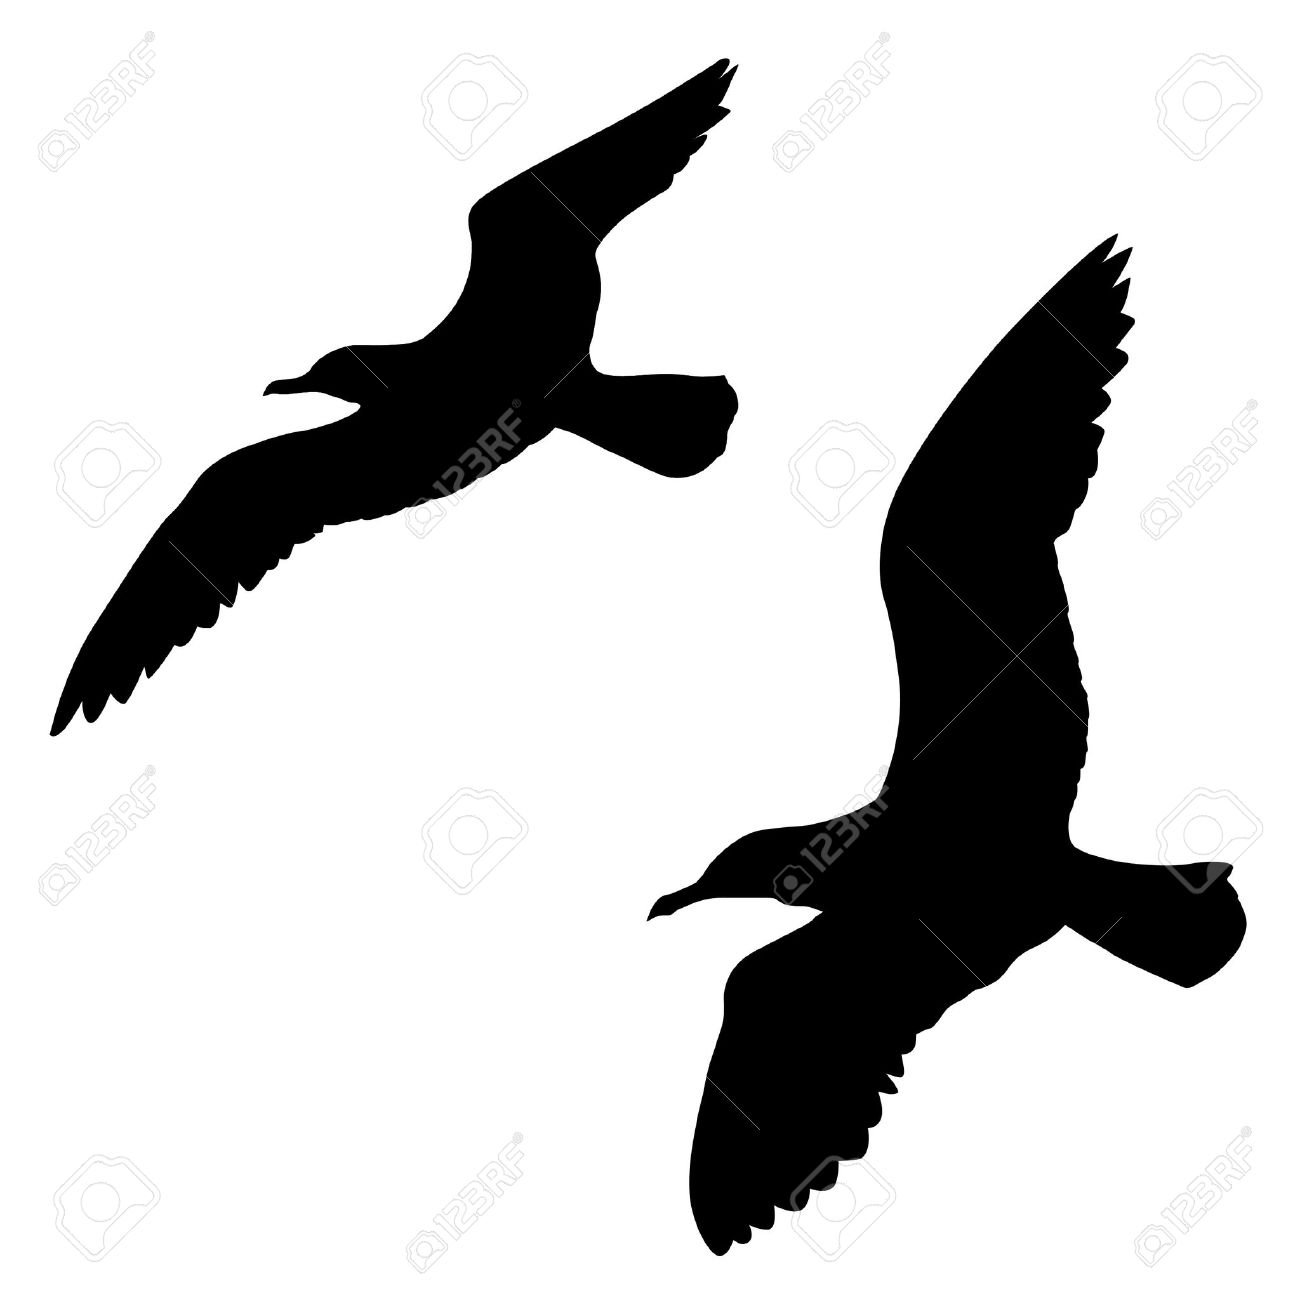 silhouette of the sea gull on white background royalty free cliparts rh 123rf com seagull vectorial seagull vector art free